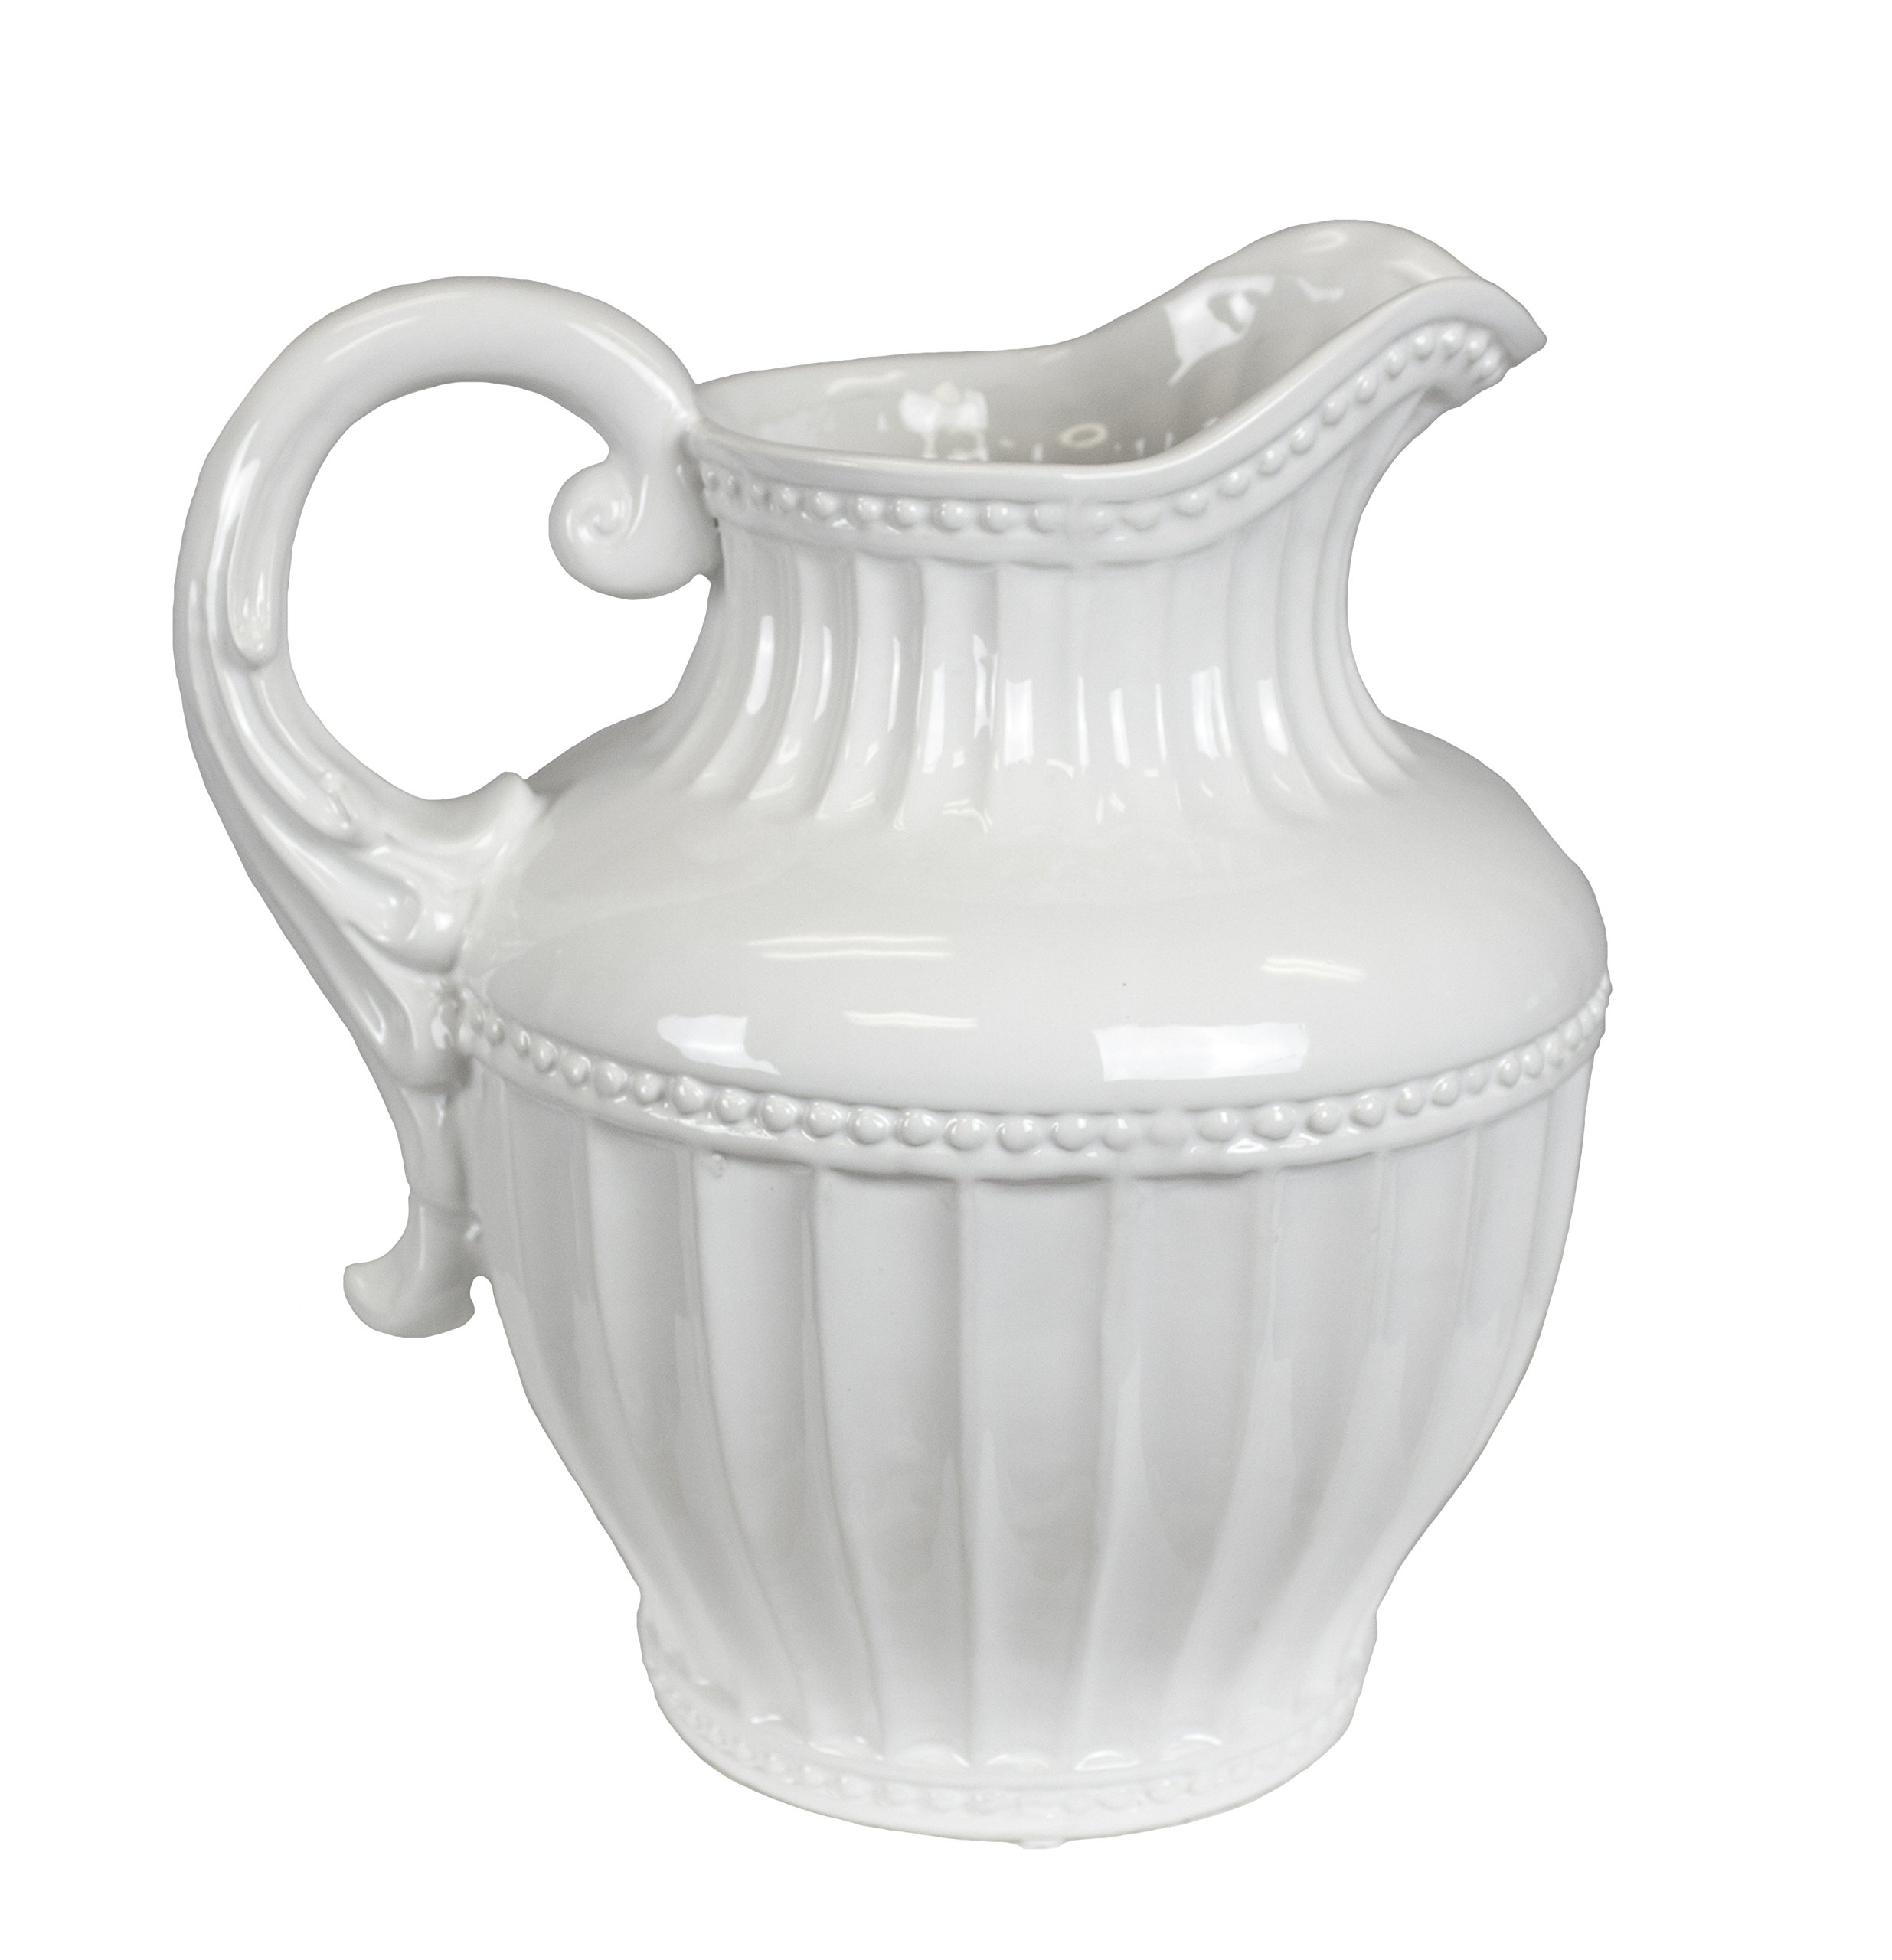 Sagebrook Home 11630 Decorative Pitcher, White Ceramic, 10 x 10 x 11.5 Inches